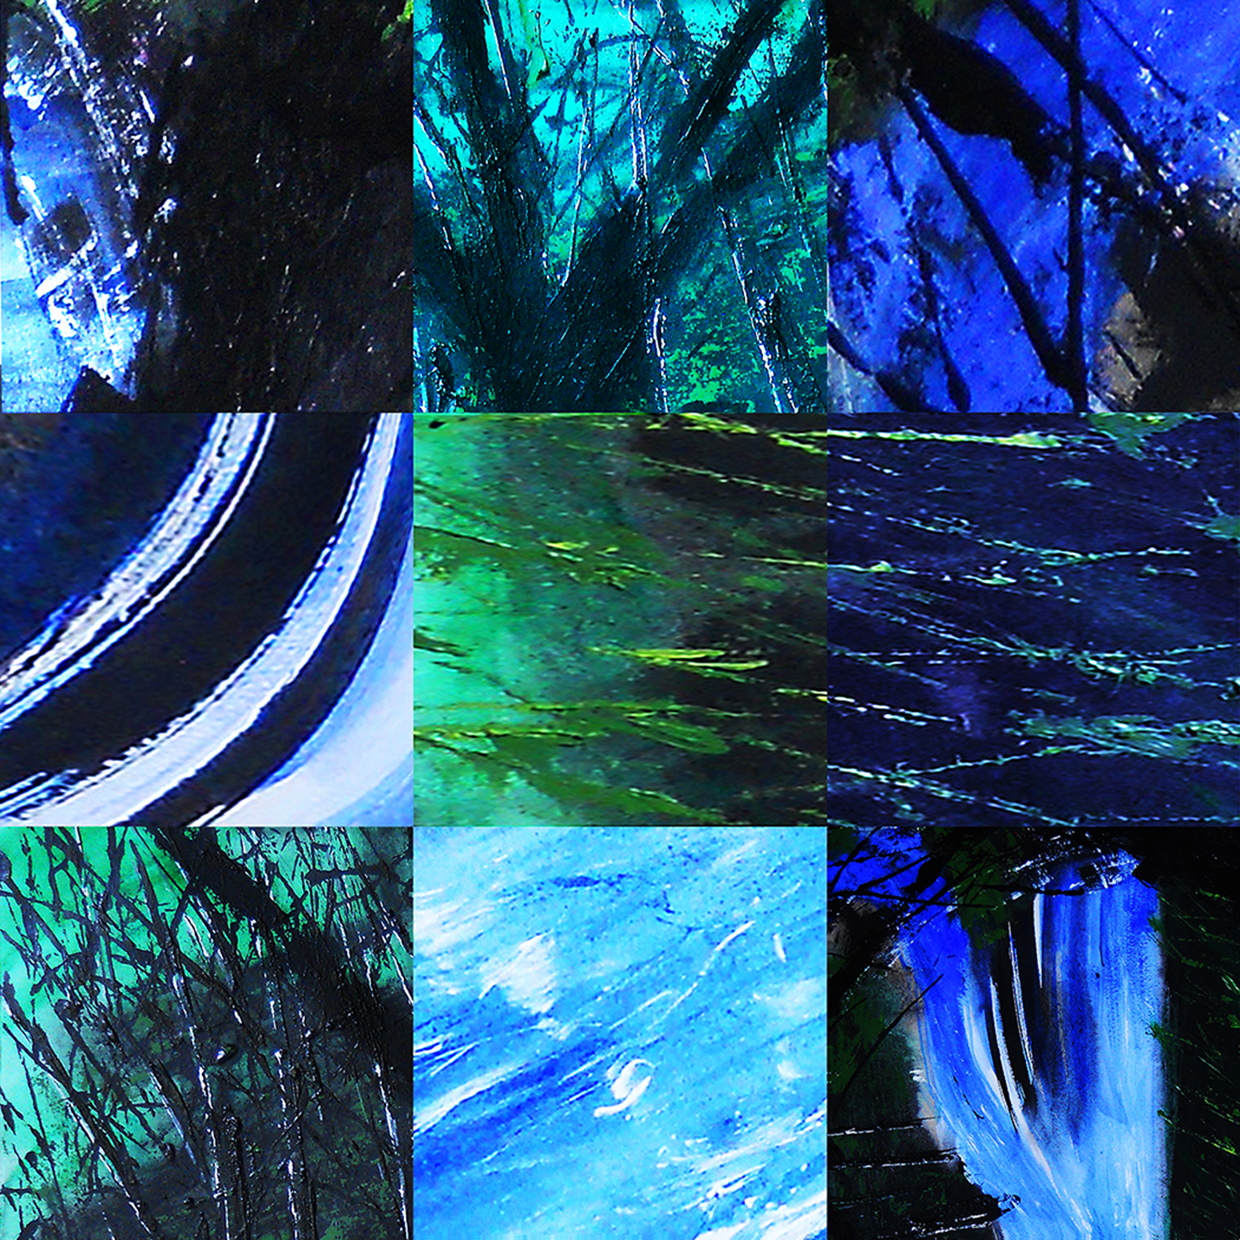 nature, watershed, environment, abstract, digital print, printed on glass or aluminum, green, blue, expressionistic, emotional